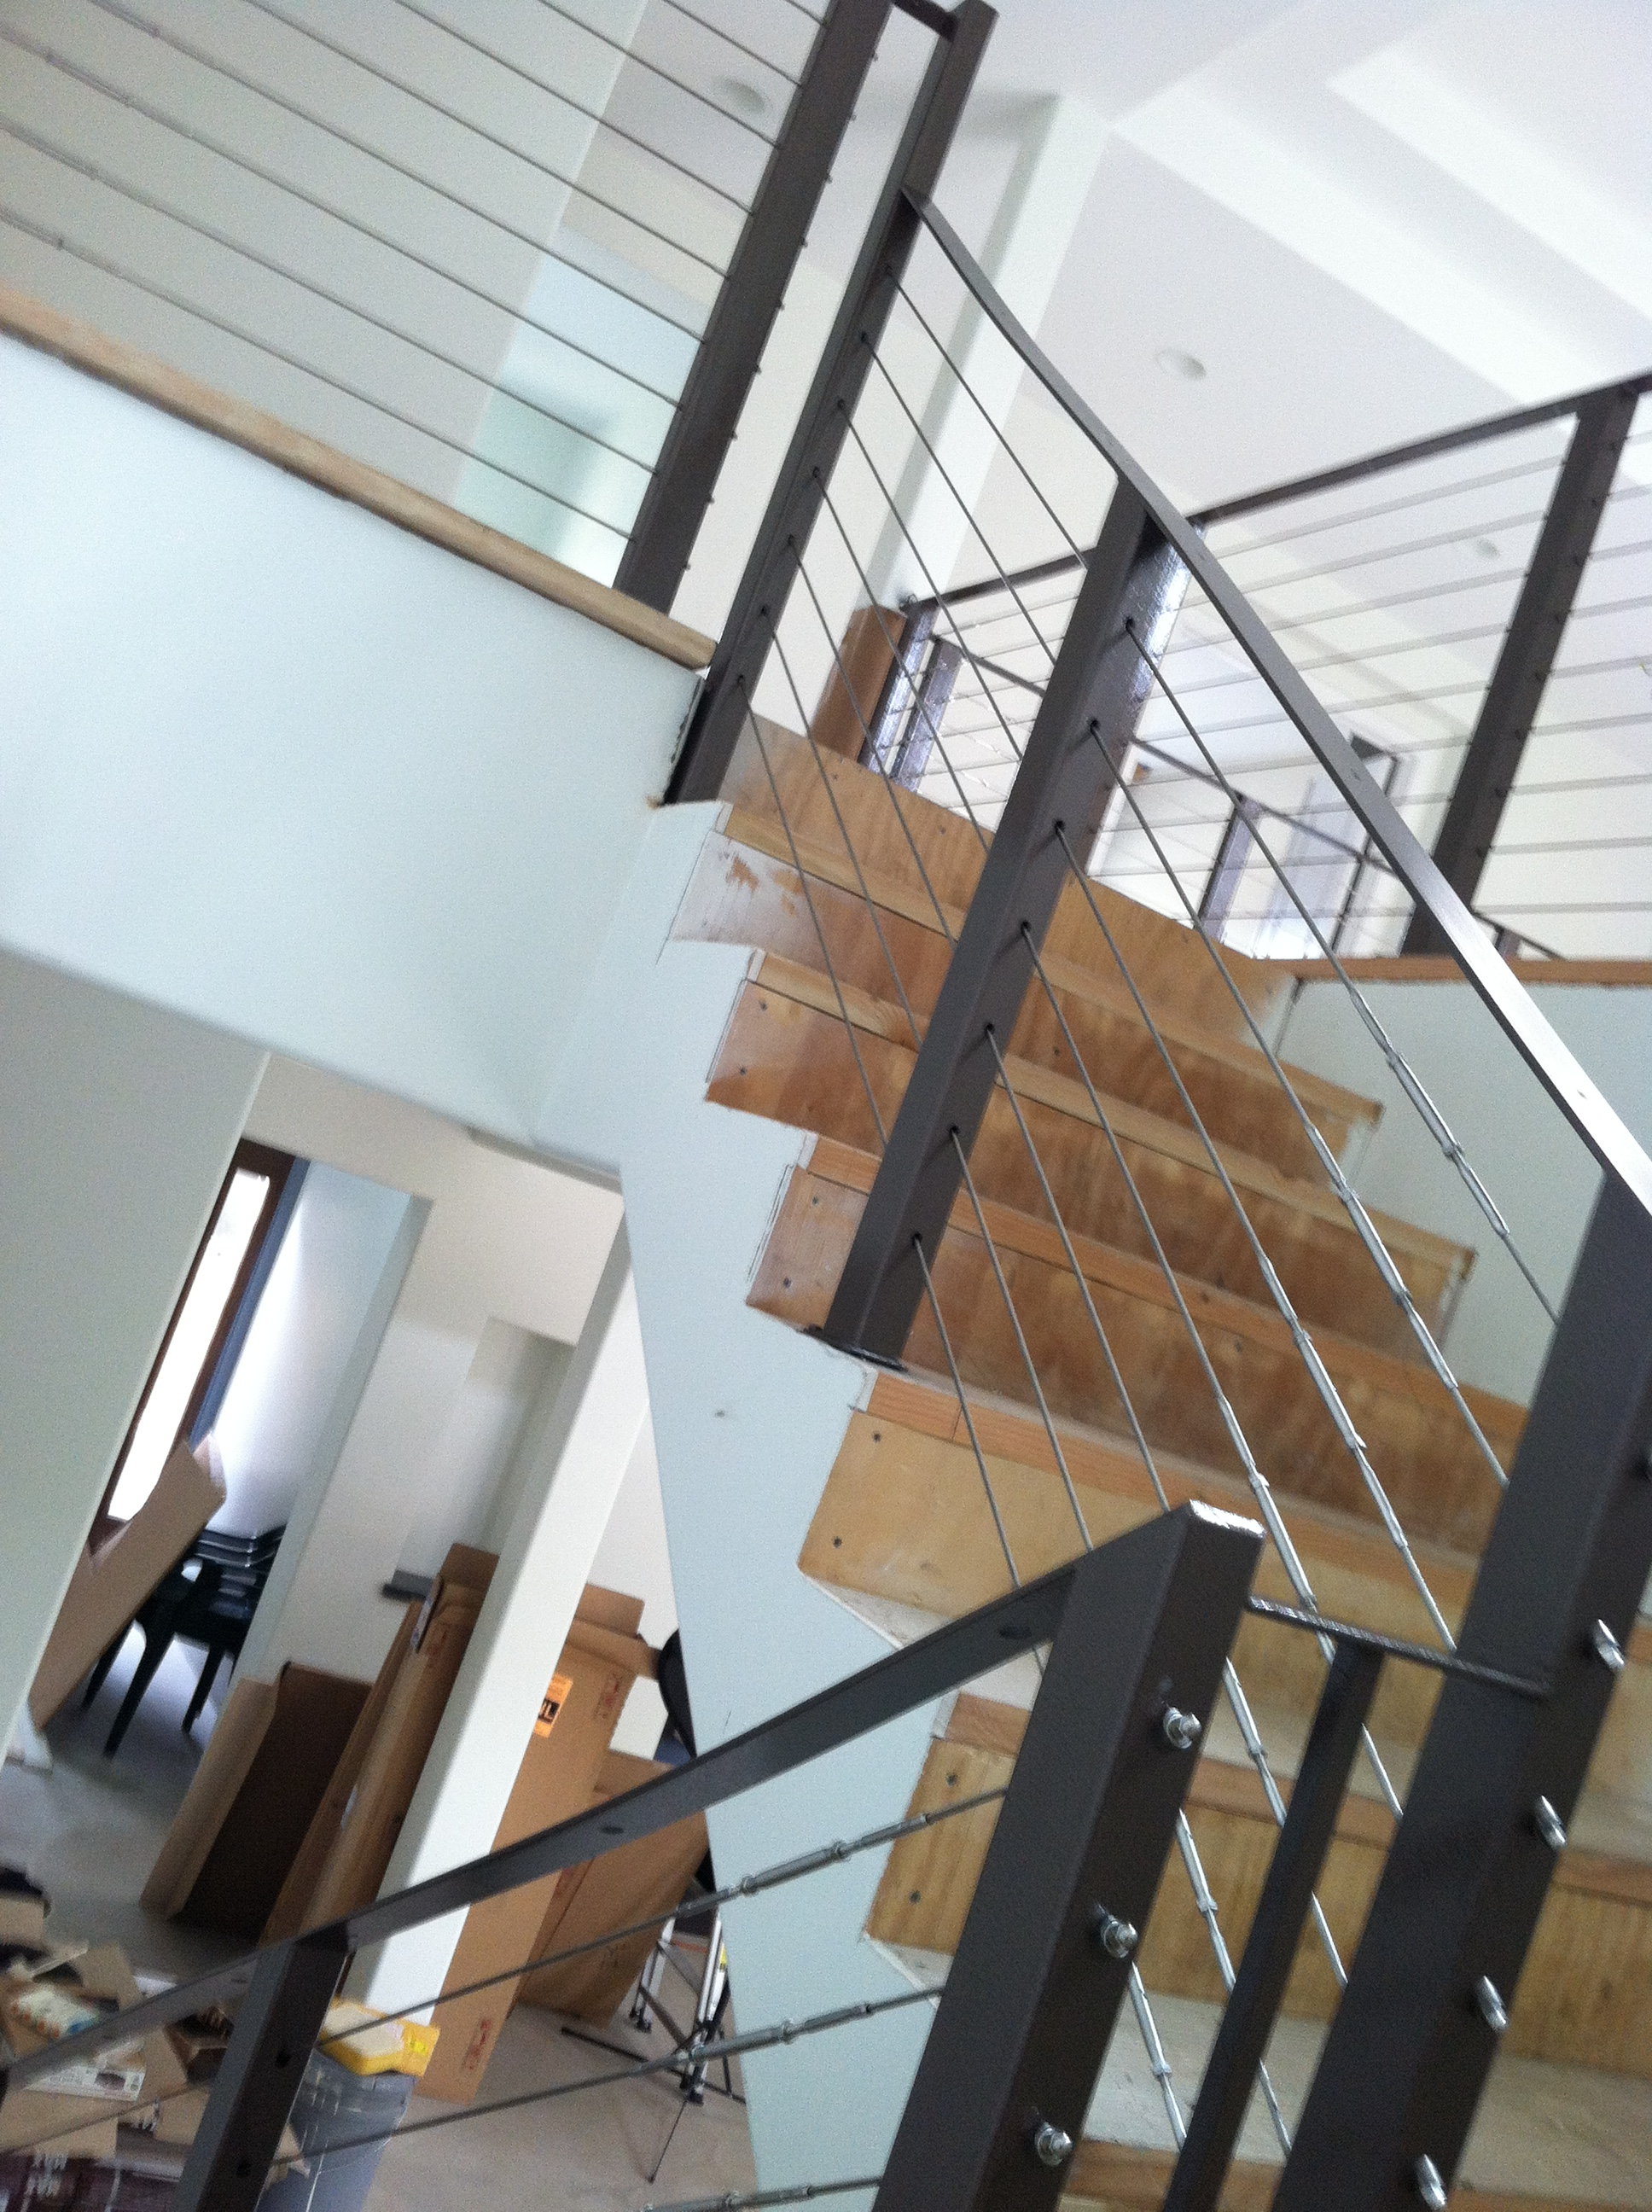 image 1 of stainless steel cable railing